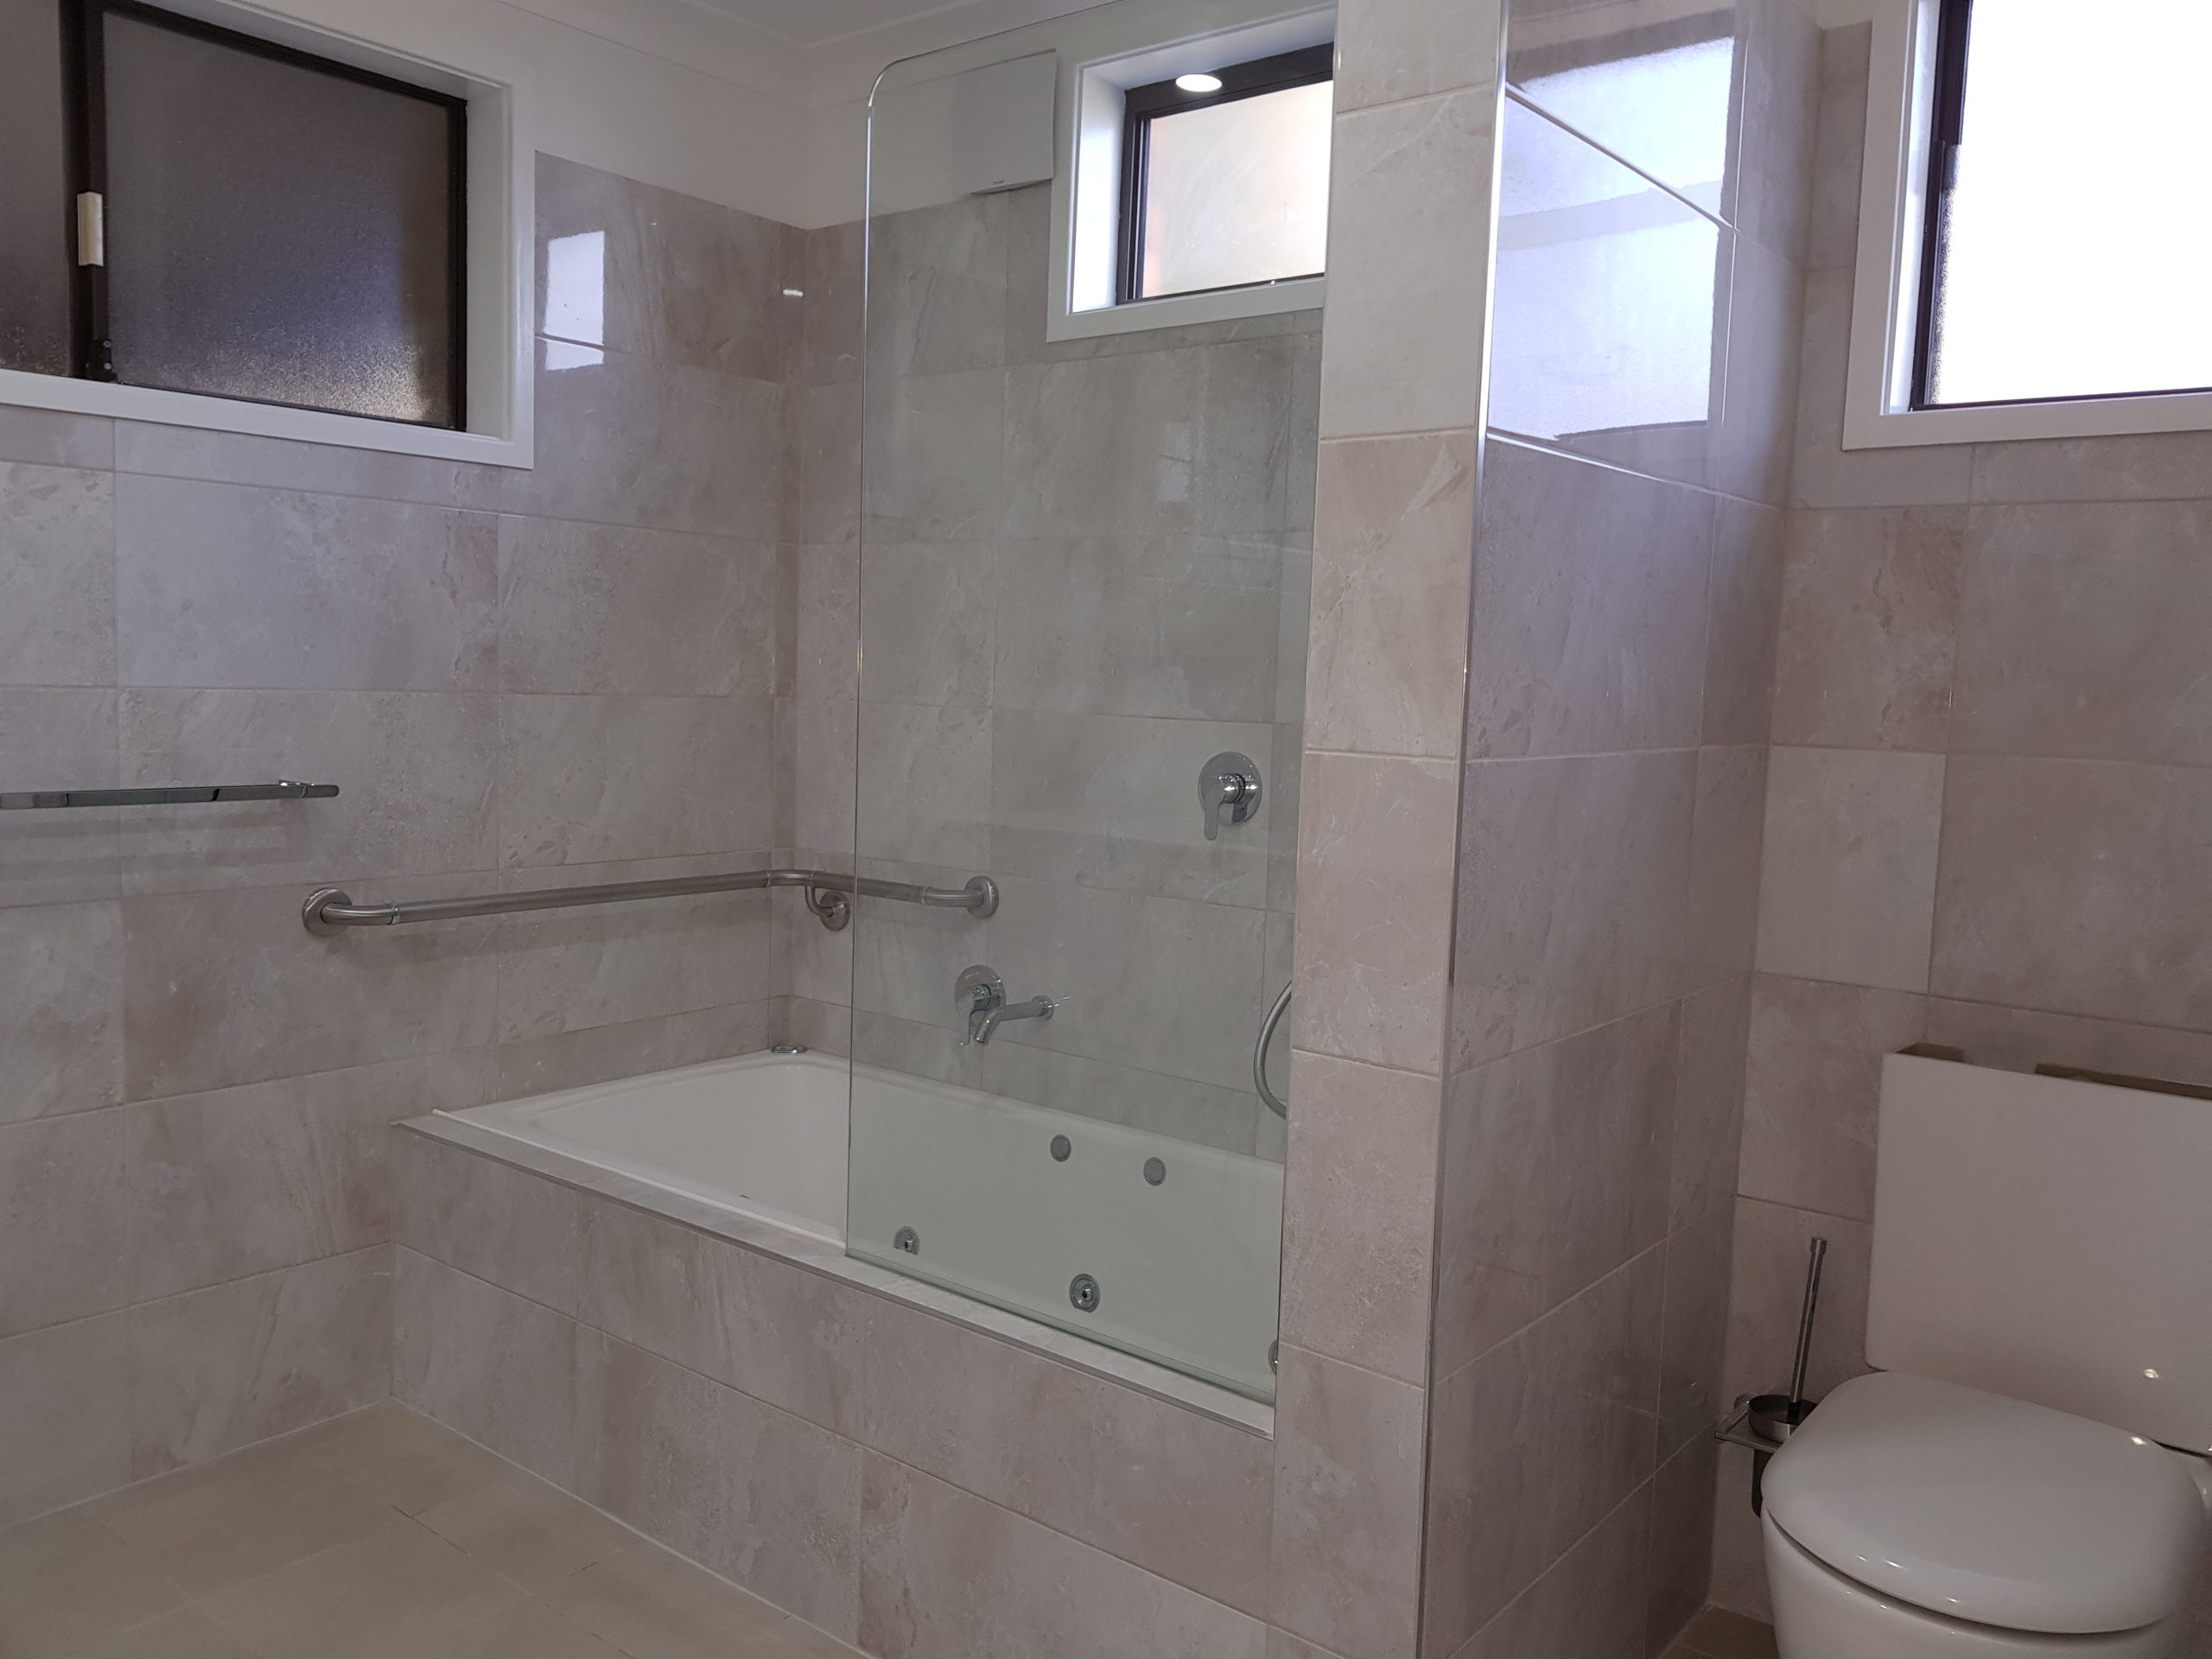 Bathroom renovation in east maitland after it was completly renovated